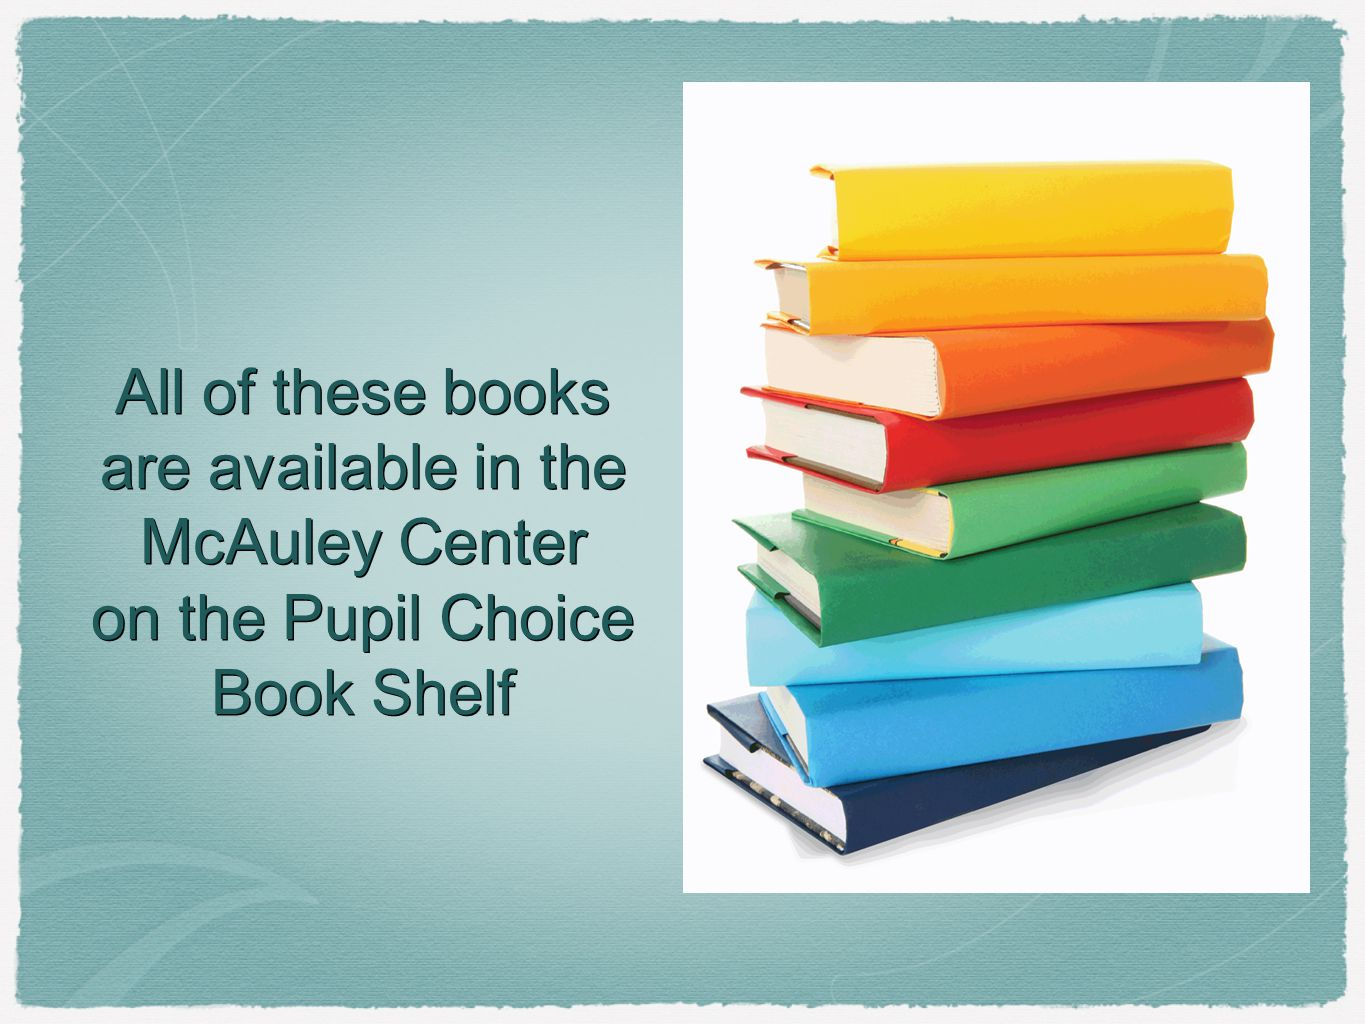 All of these books are available in the McAuley Center on the Pupil Choice Book Shelf